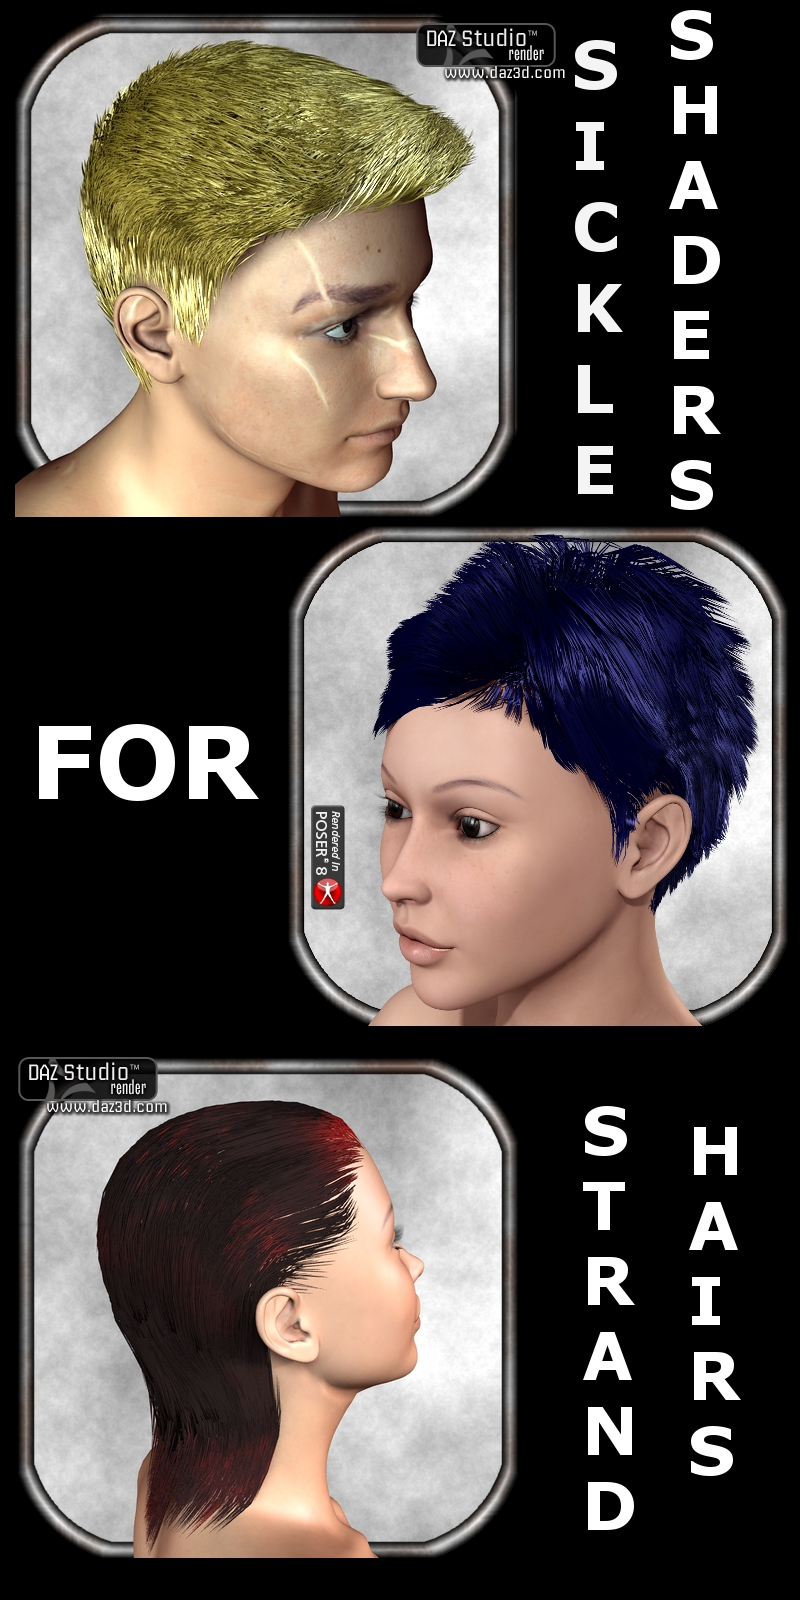 Sickle Shaders for Strand Hairs